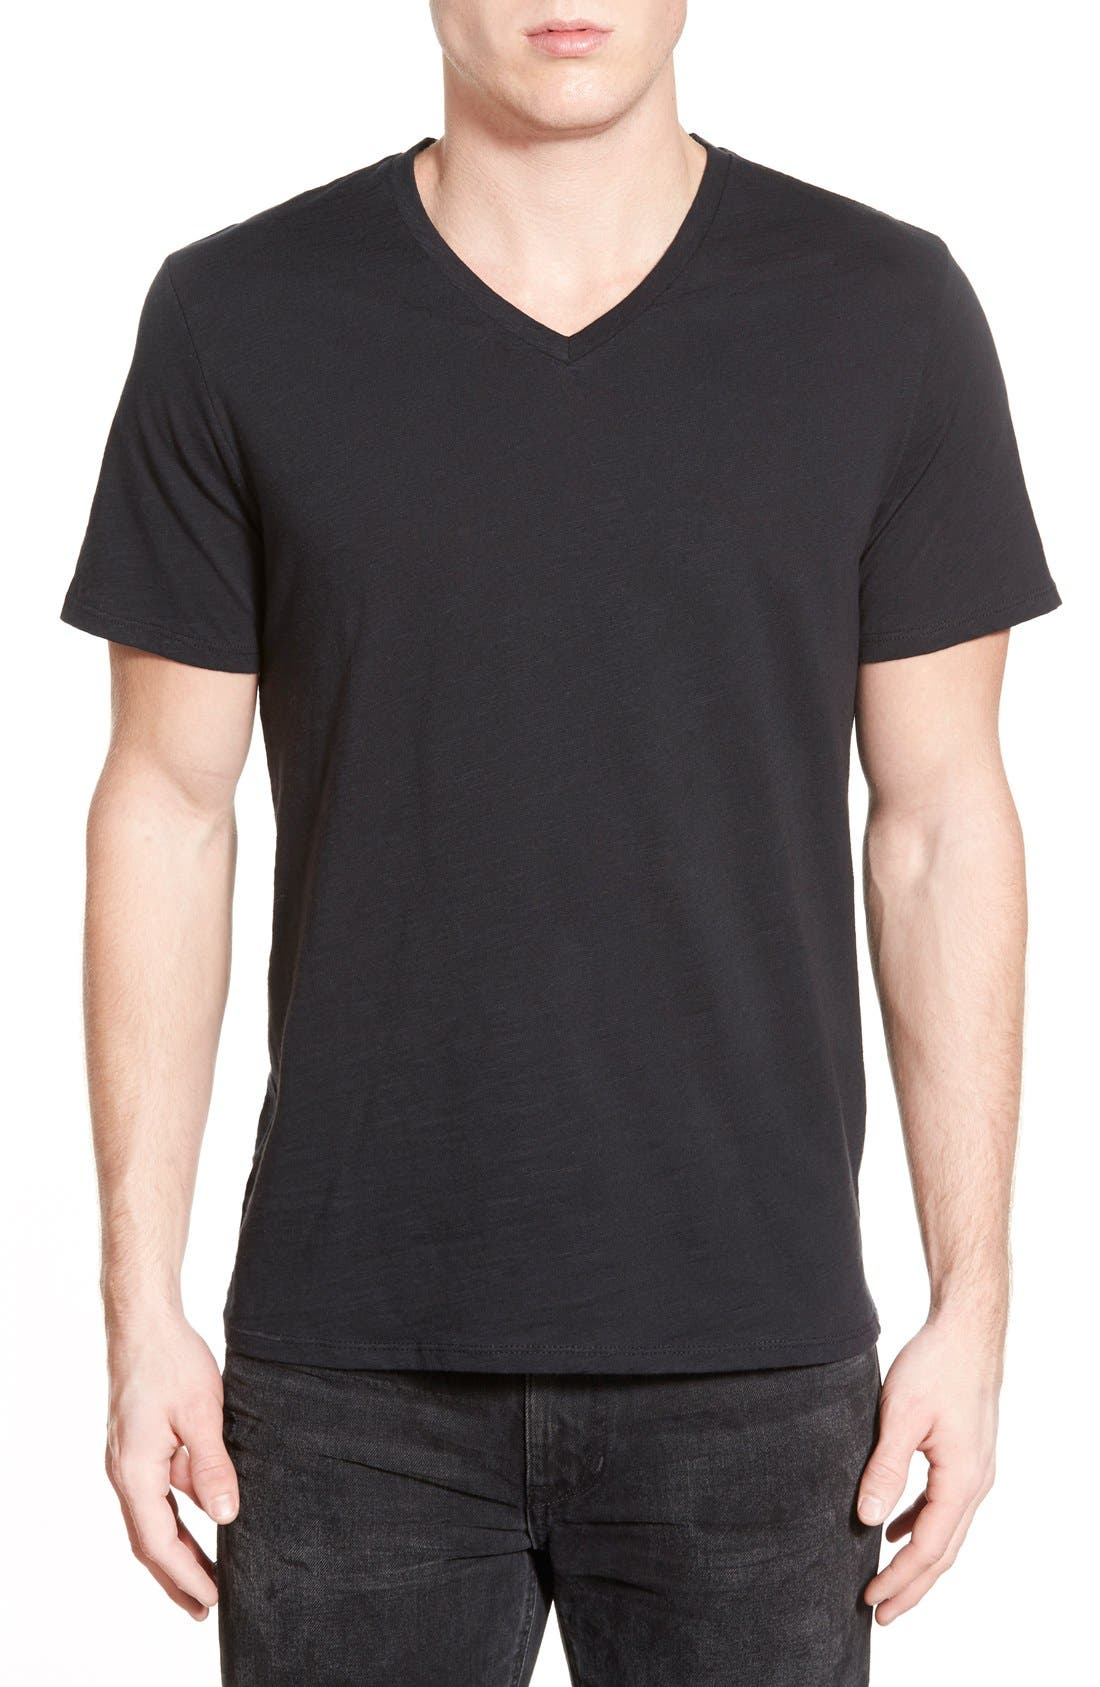 The Rail Slub Cotton V-Neck T-Shirt